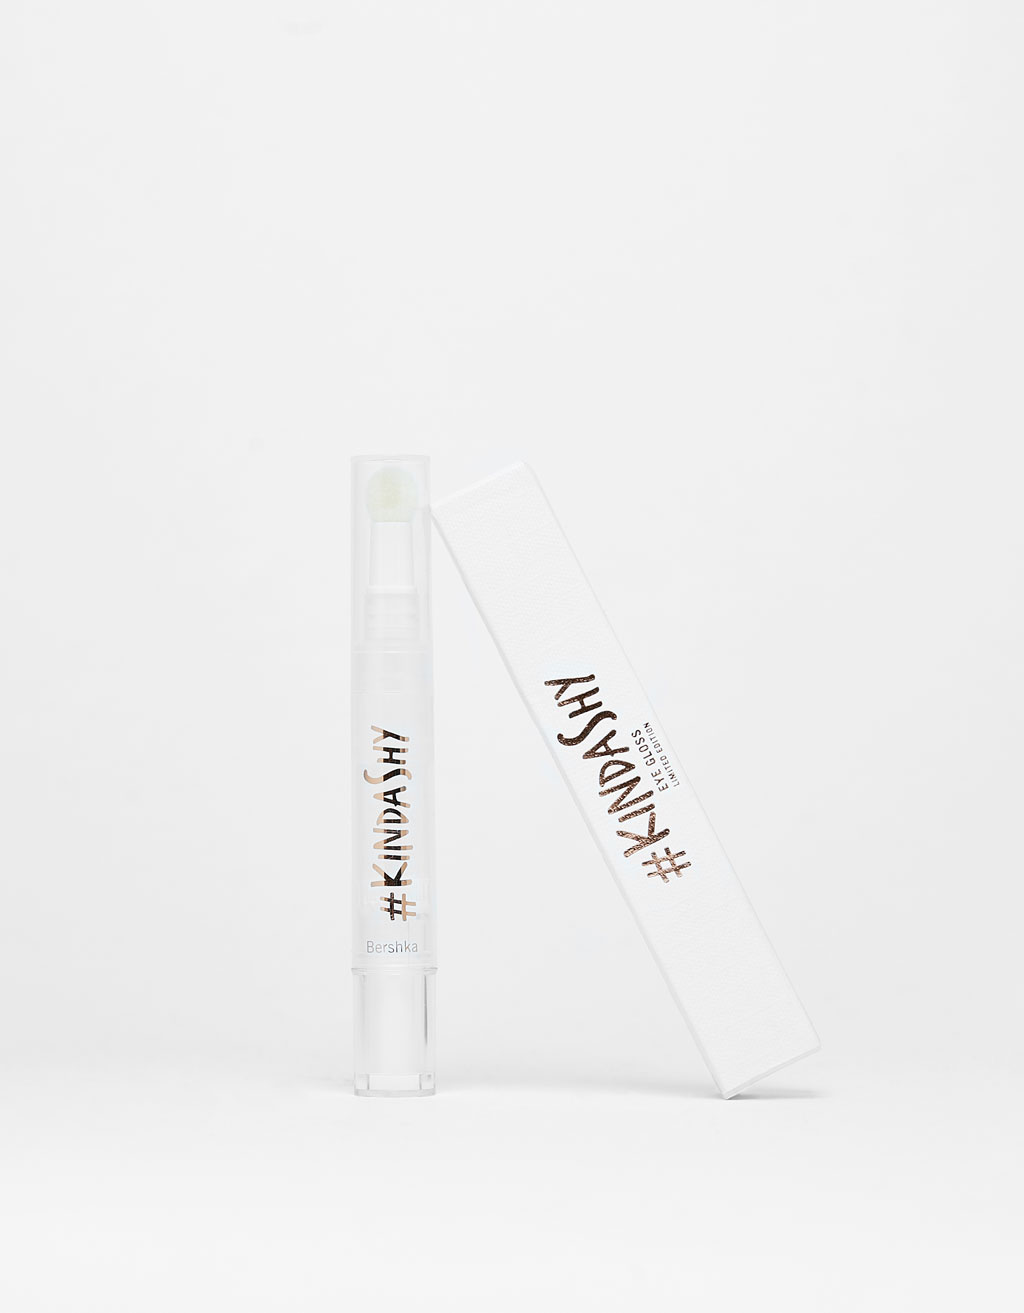 (P2) BERSHKA EYEGLOSS KINDASHY 3ML